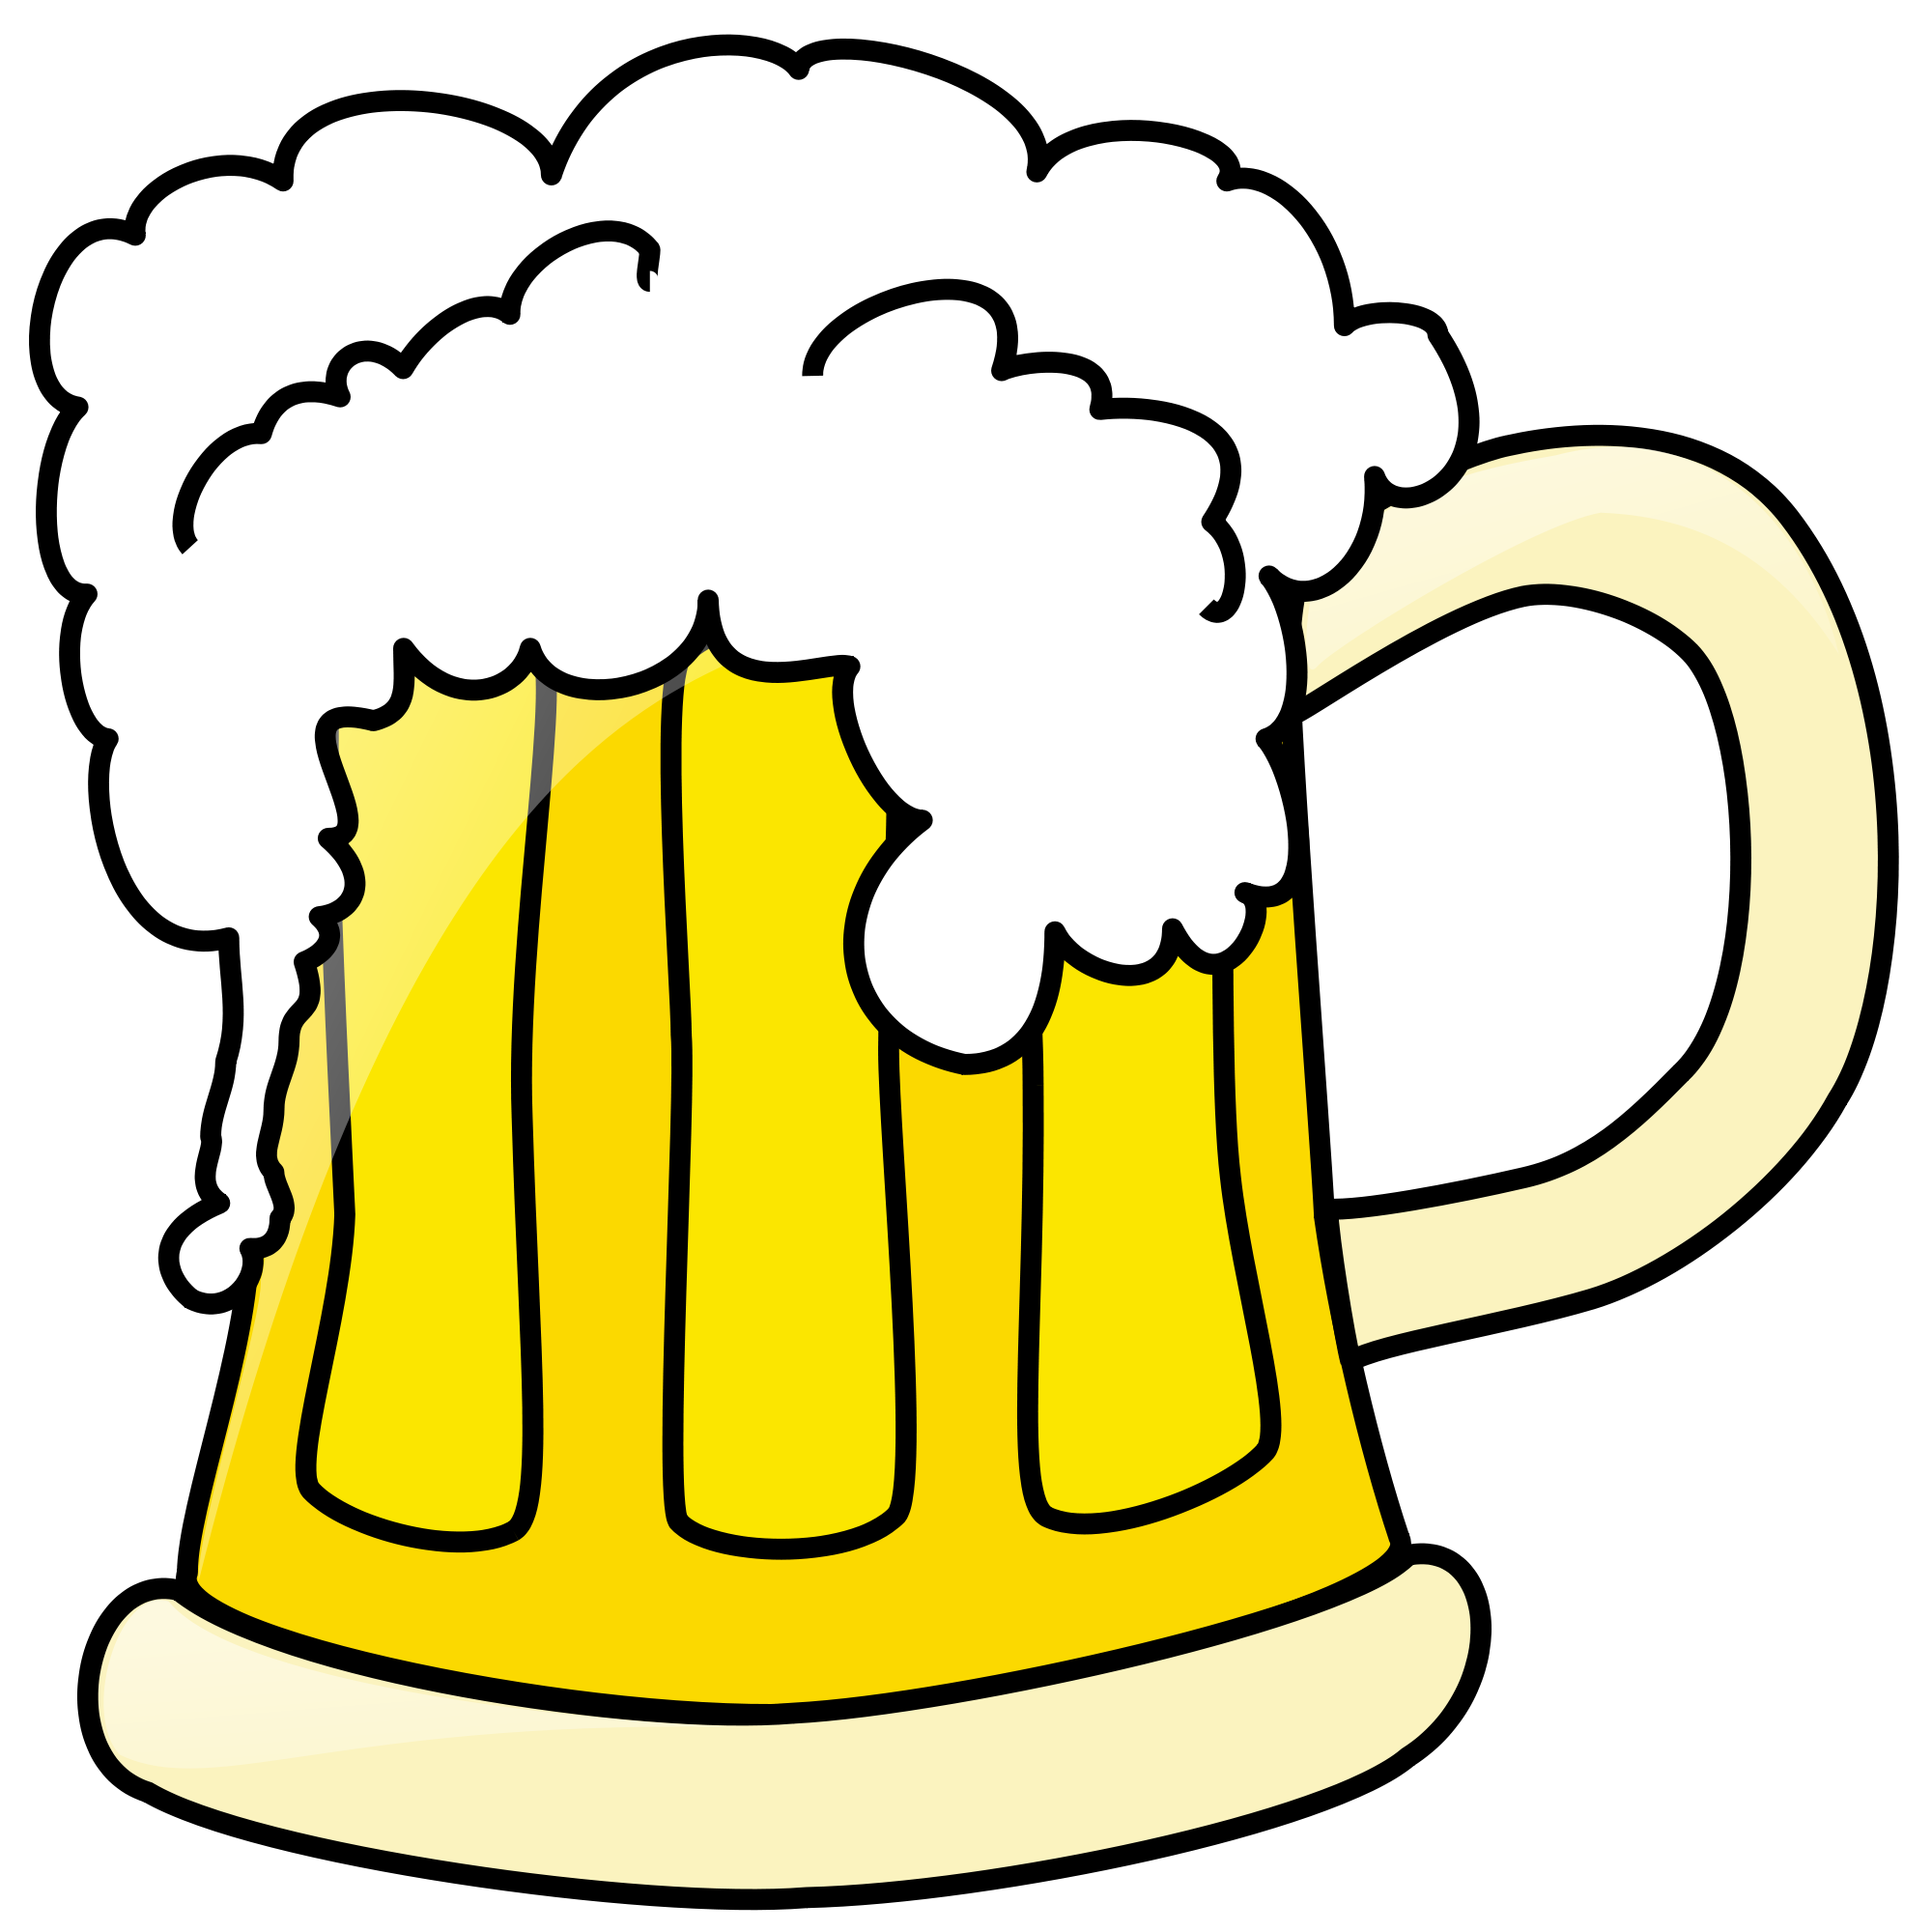 Beer stein drawing at. Einstein clipart sketch